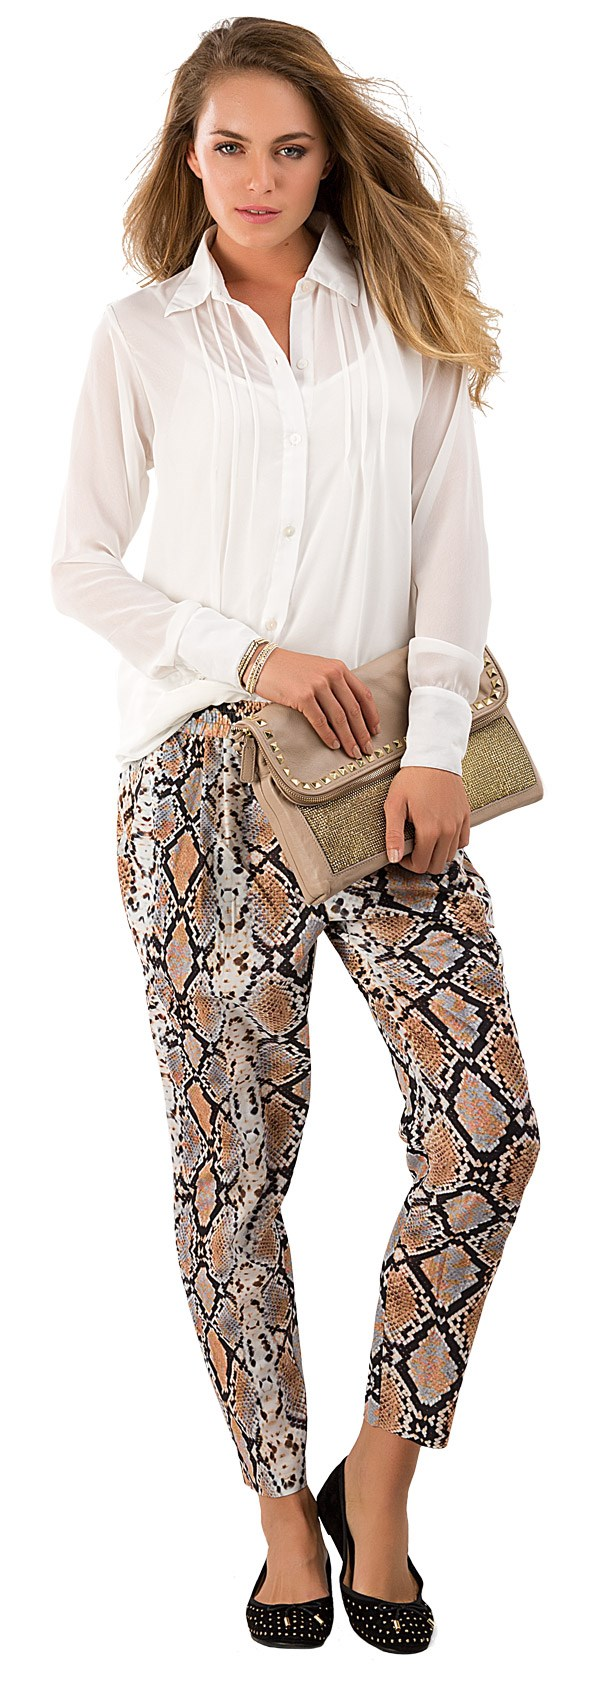 SMART Woman's Rose shirt $149.90 from Now & Then. Snake print pant $149.90 from Country Road. Woven bracelets $10.99 each from Diva. Skyline clutch $140 from Skin. Dance out ballet flat $69.99 from Hannahs.